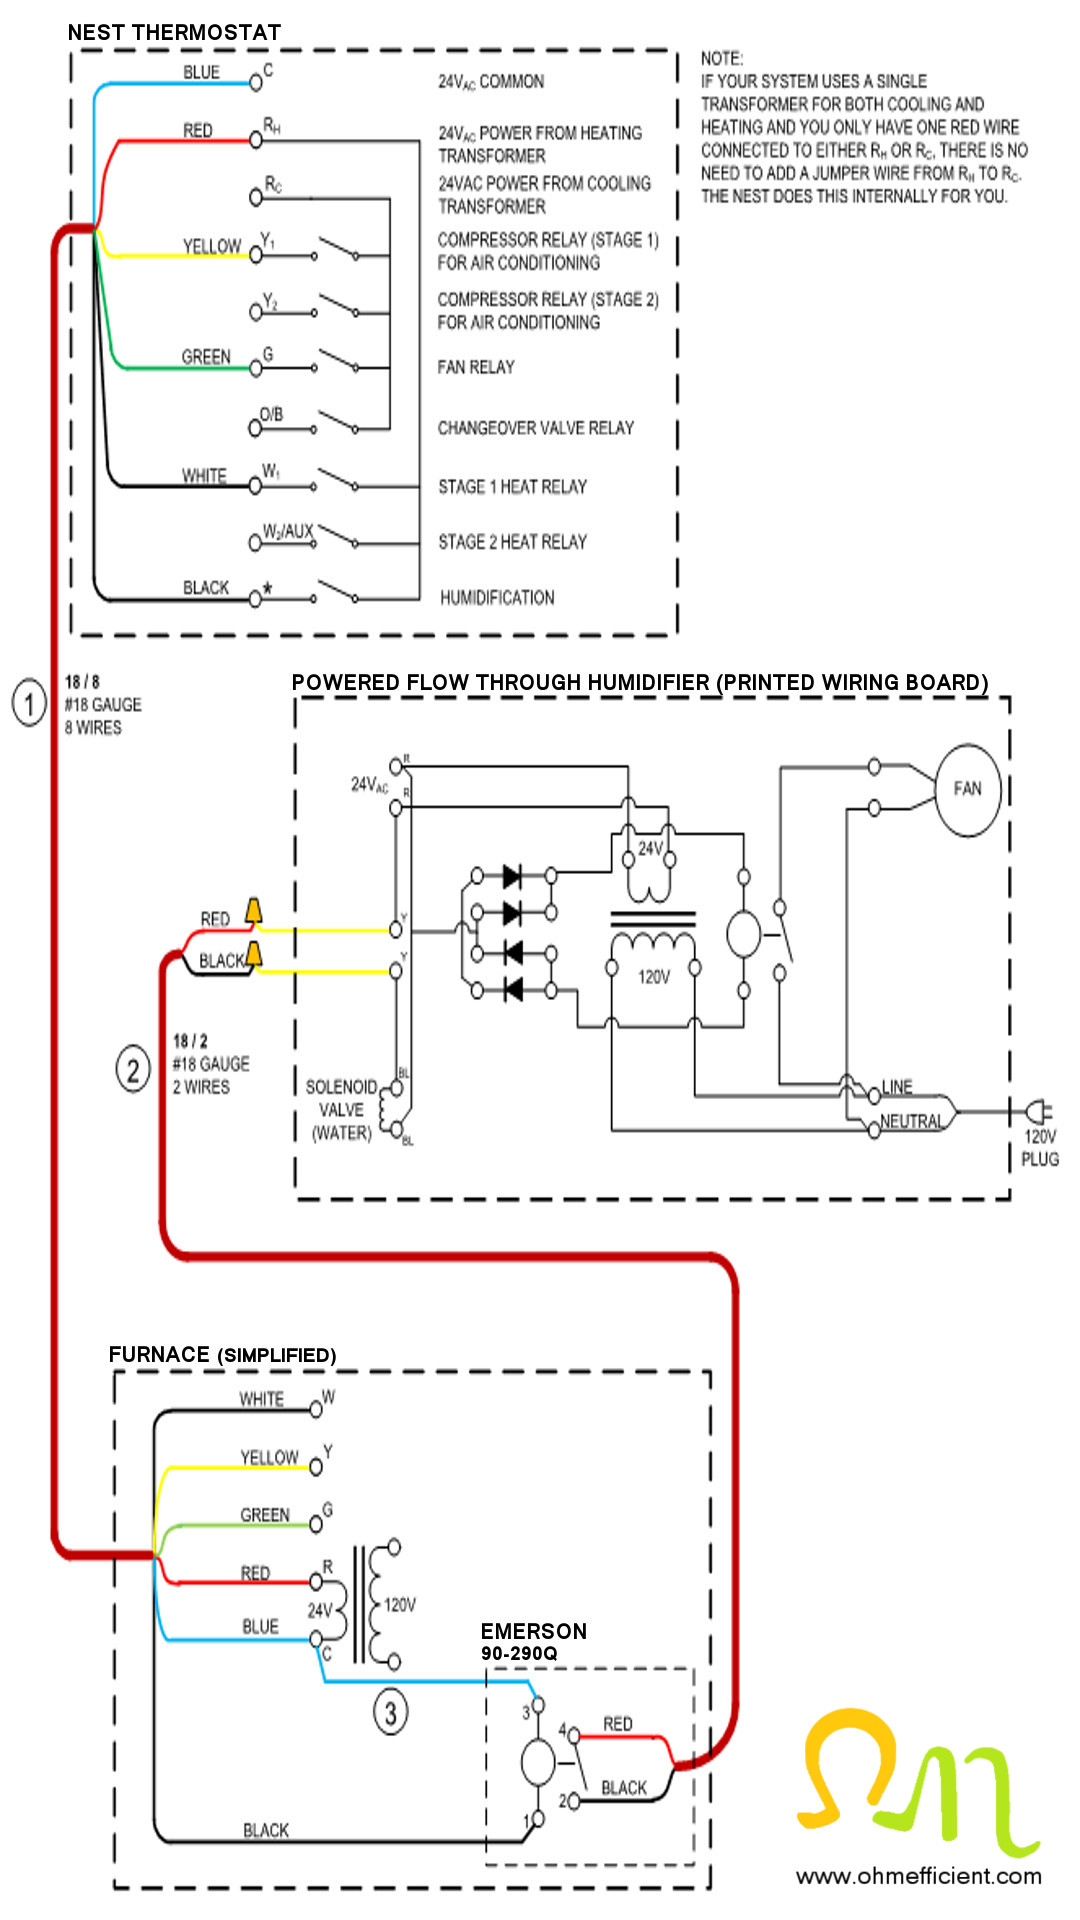 How To Connect & Setup A Nest Thermostat To Function As A Humidistat - Nest Wiring Diagram Ac